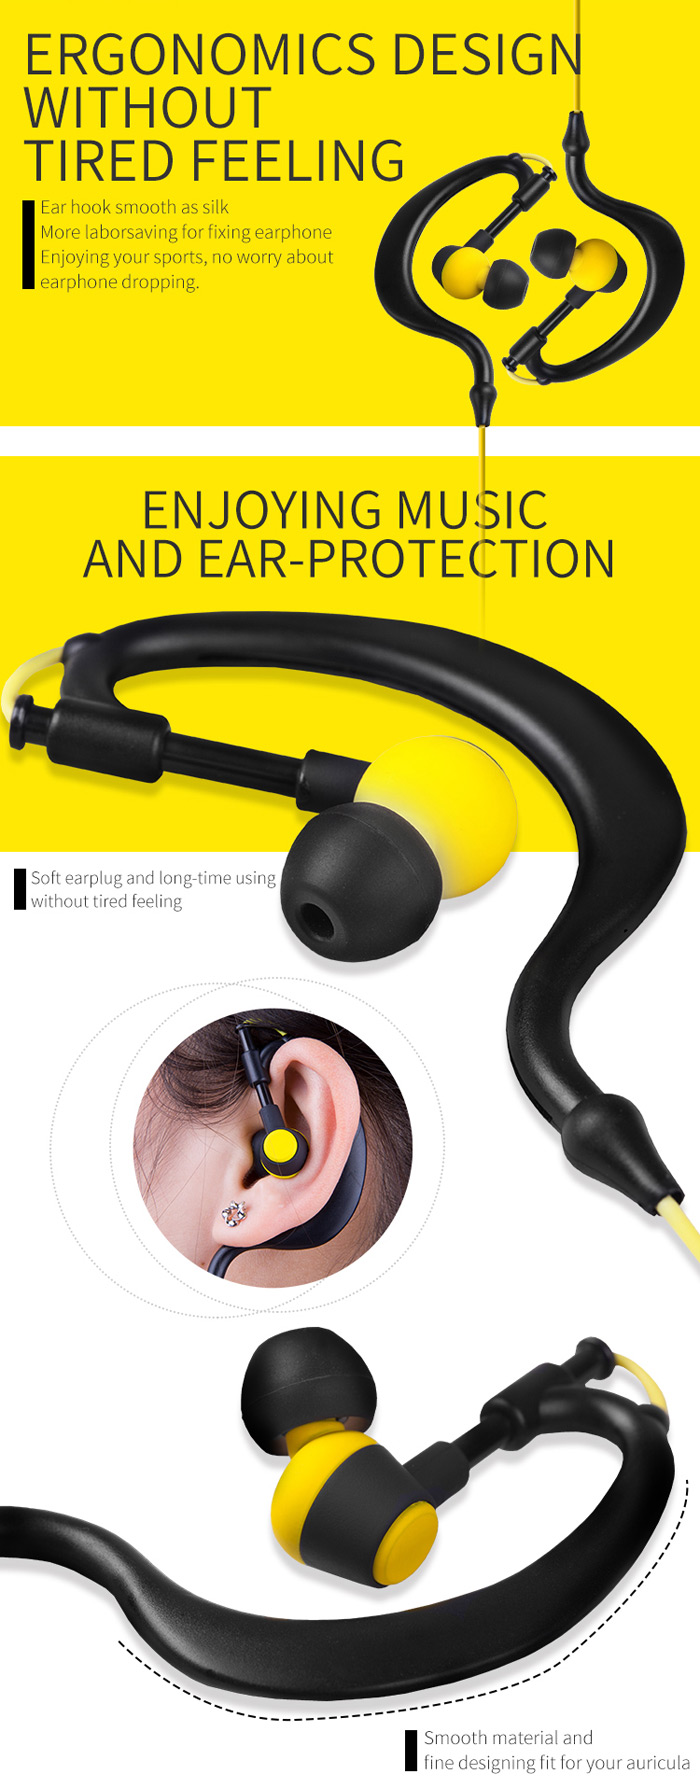 Syllable D700 Bluetooth V4.1 Wireless Sports Earphone Multipoint Connection for Smartphone Tablet PC